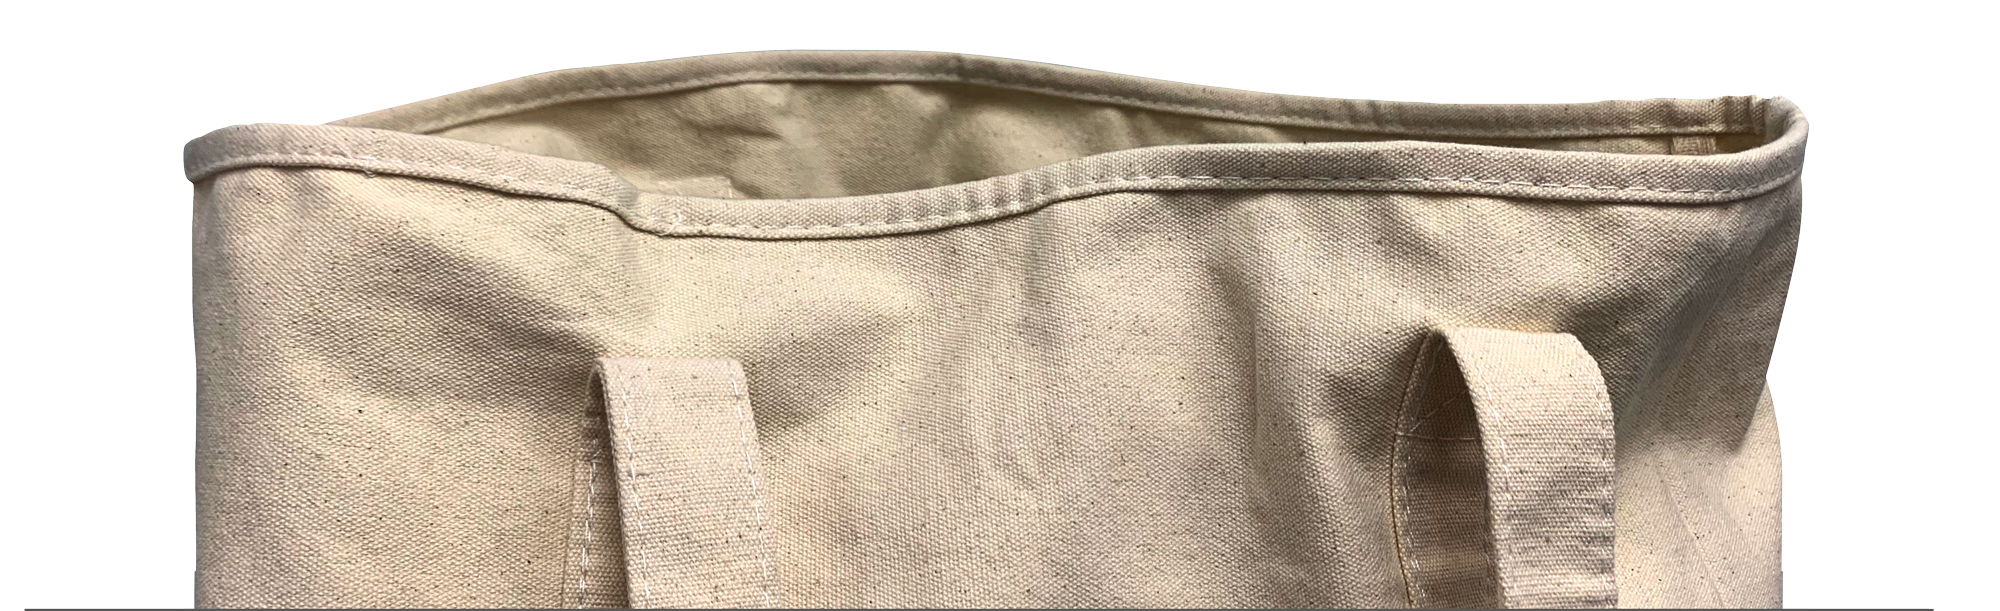 Picture of the top of a canvas tote bag